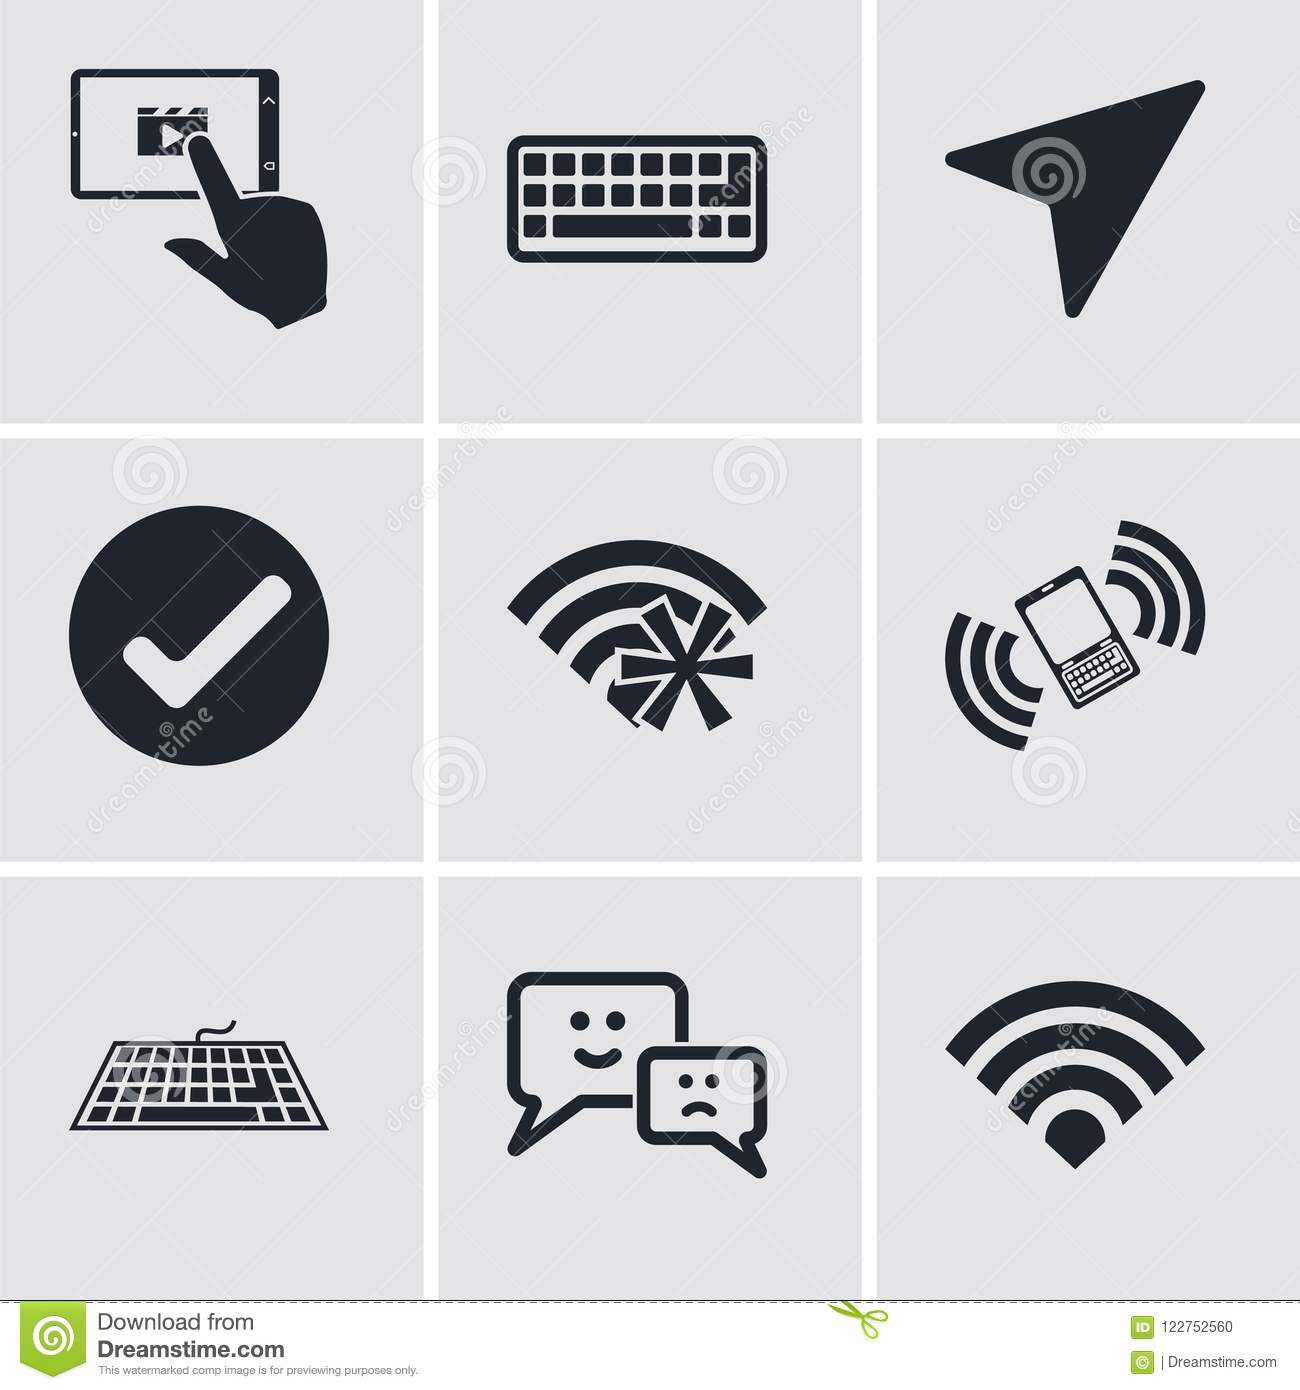 Set Of 9 Simple Editable Icons Such As Wifi Speech Keyboard Phone